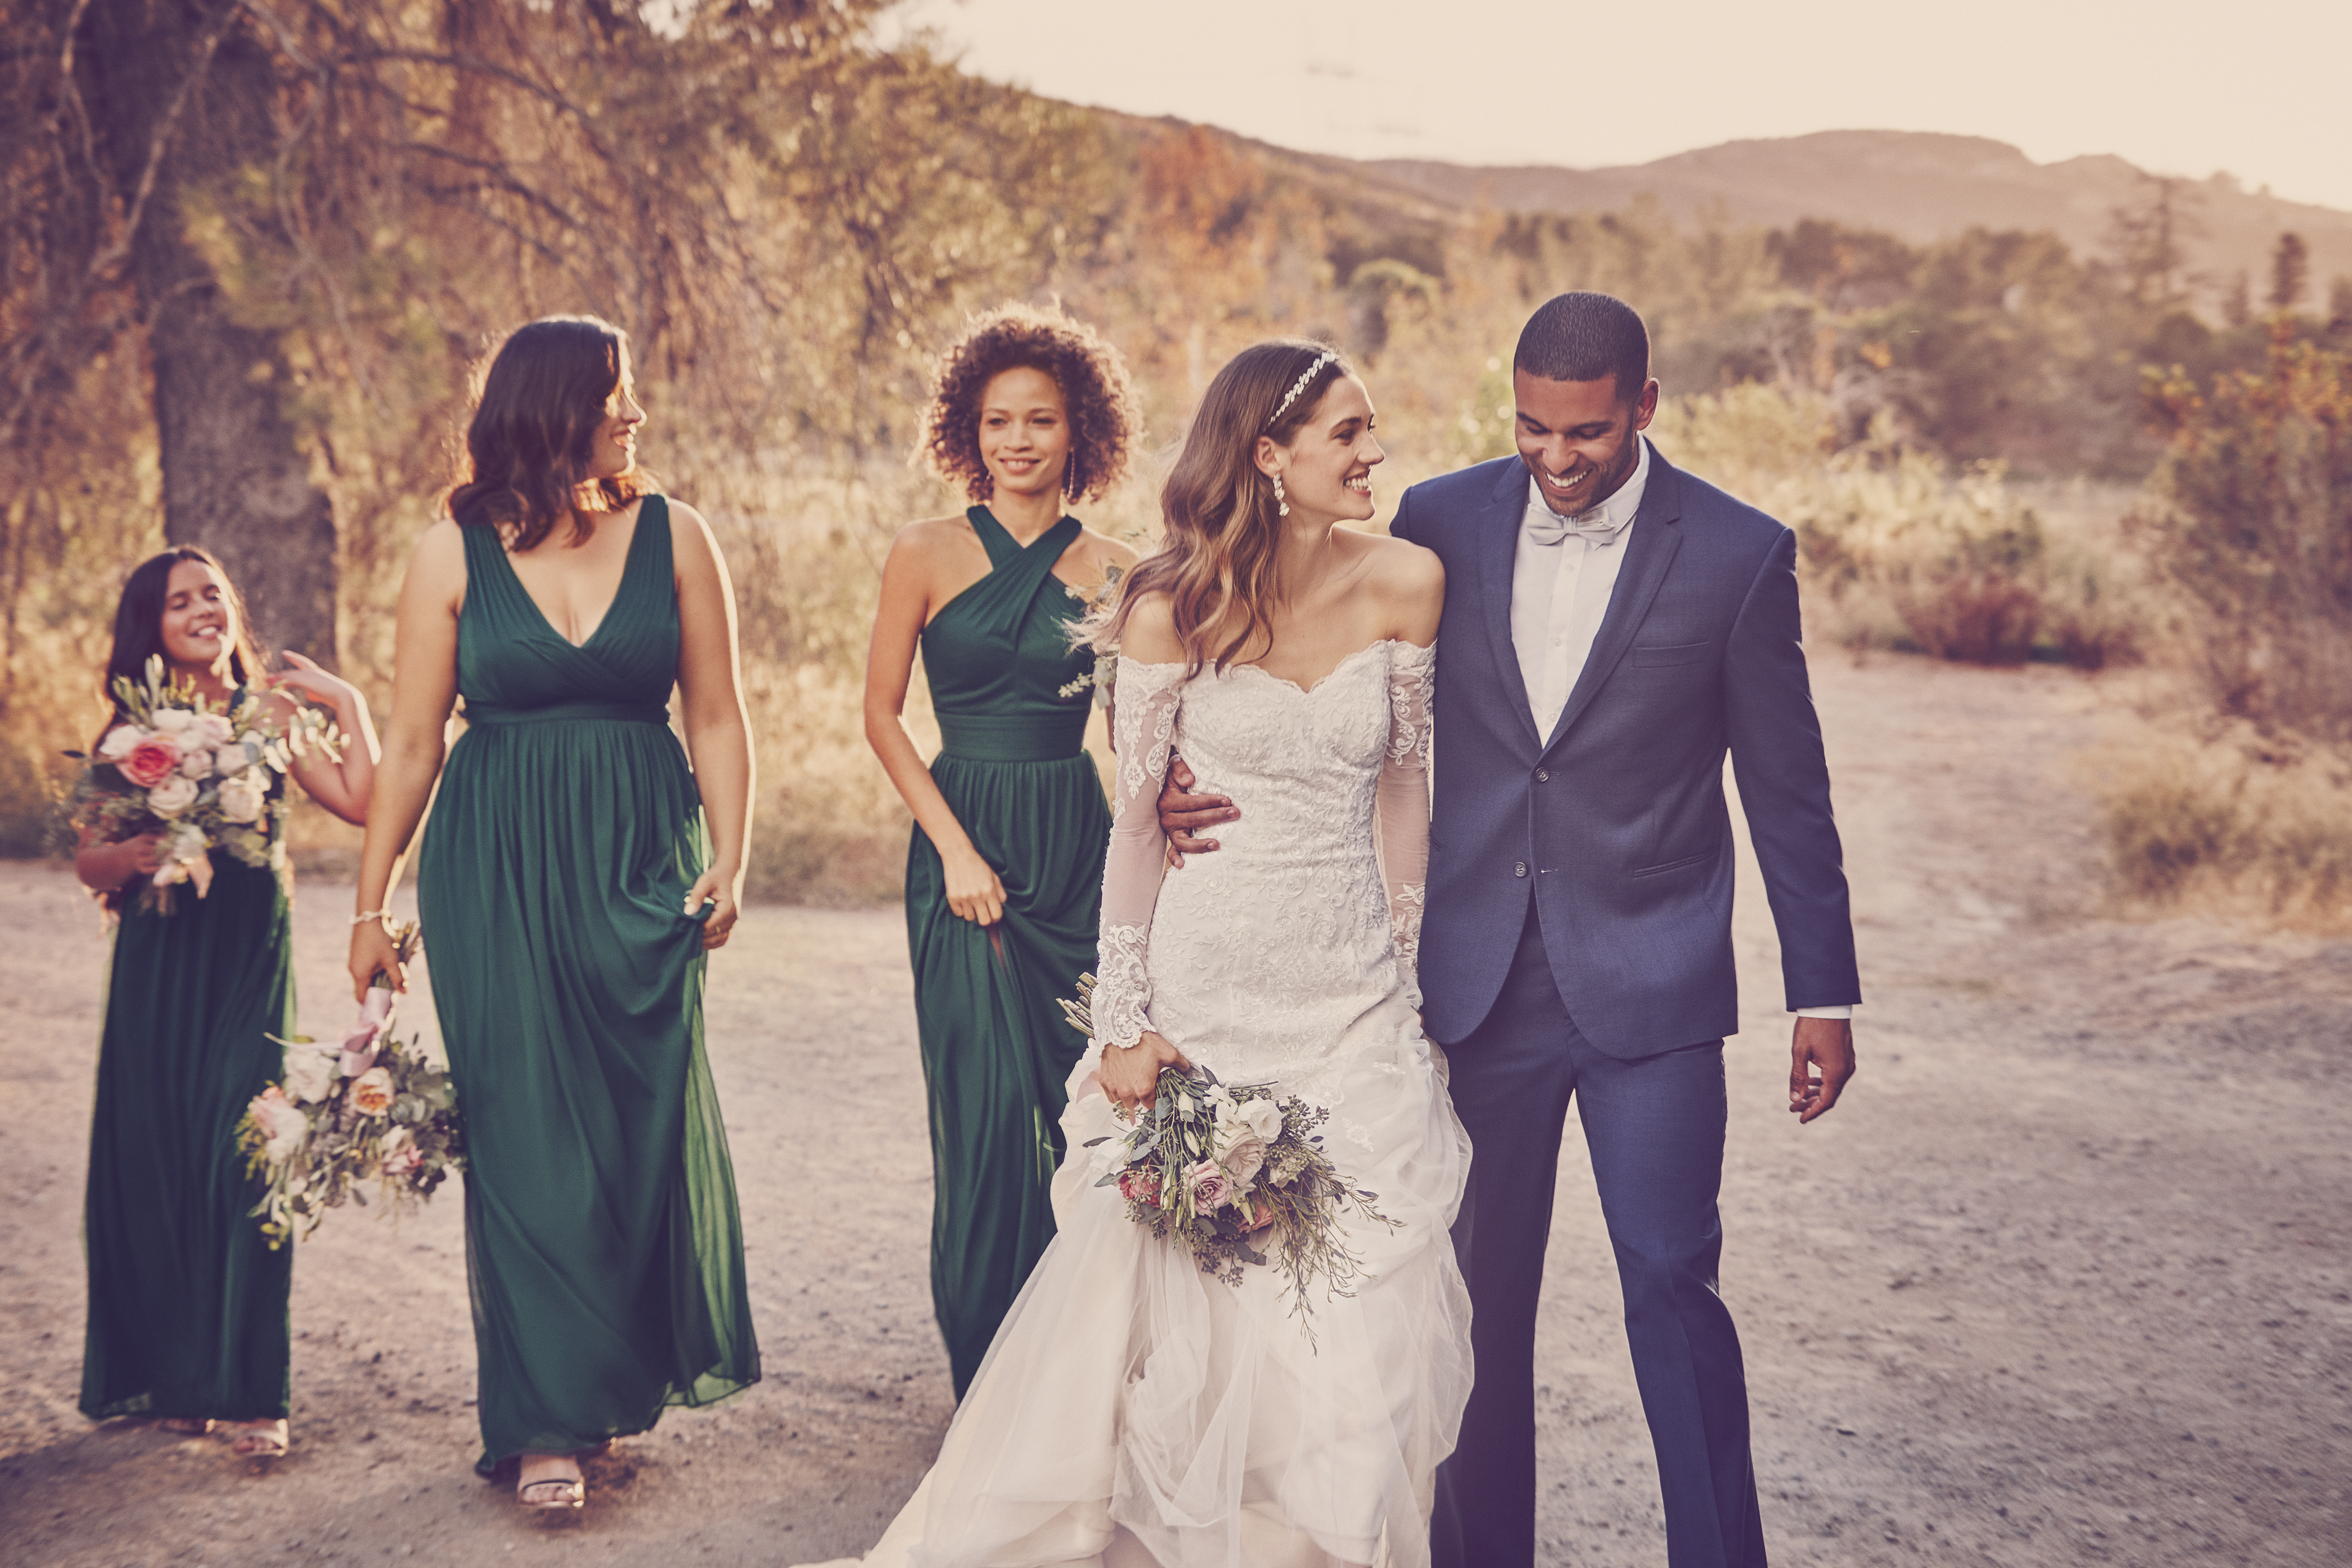 Man in suit, bride in white dress, and bridesmaids in green dresses walking on dirt road